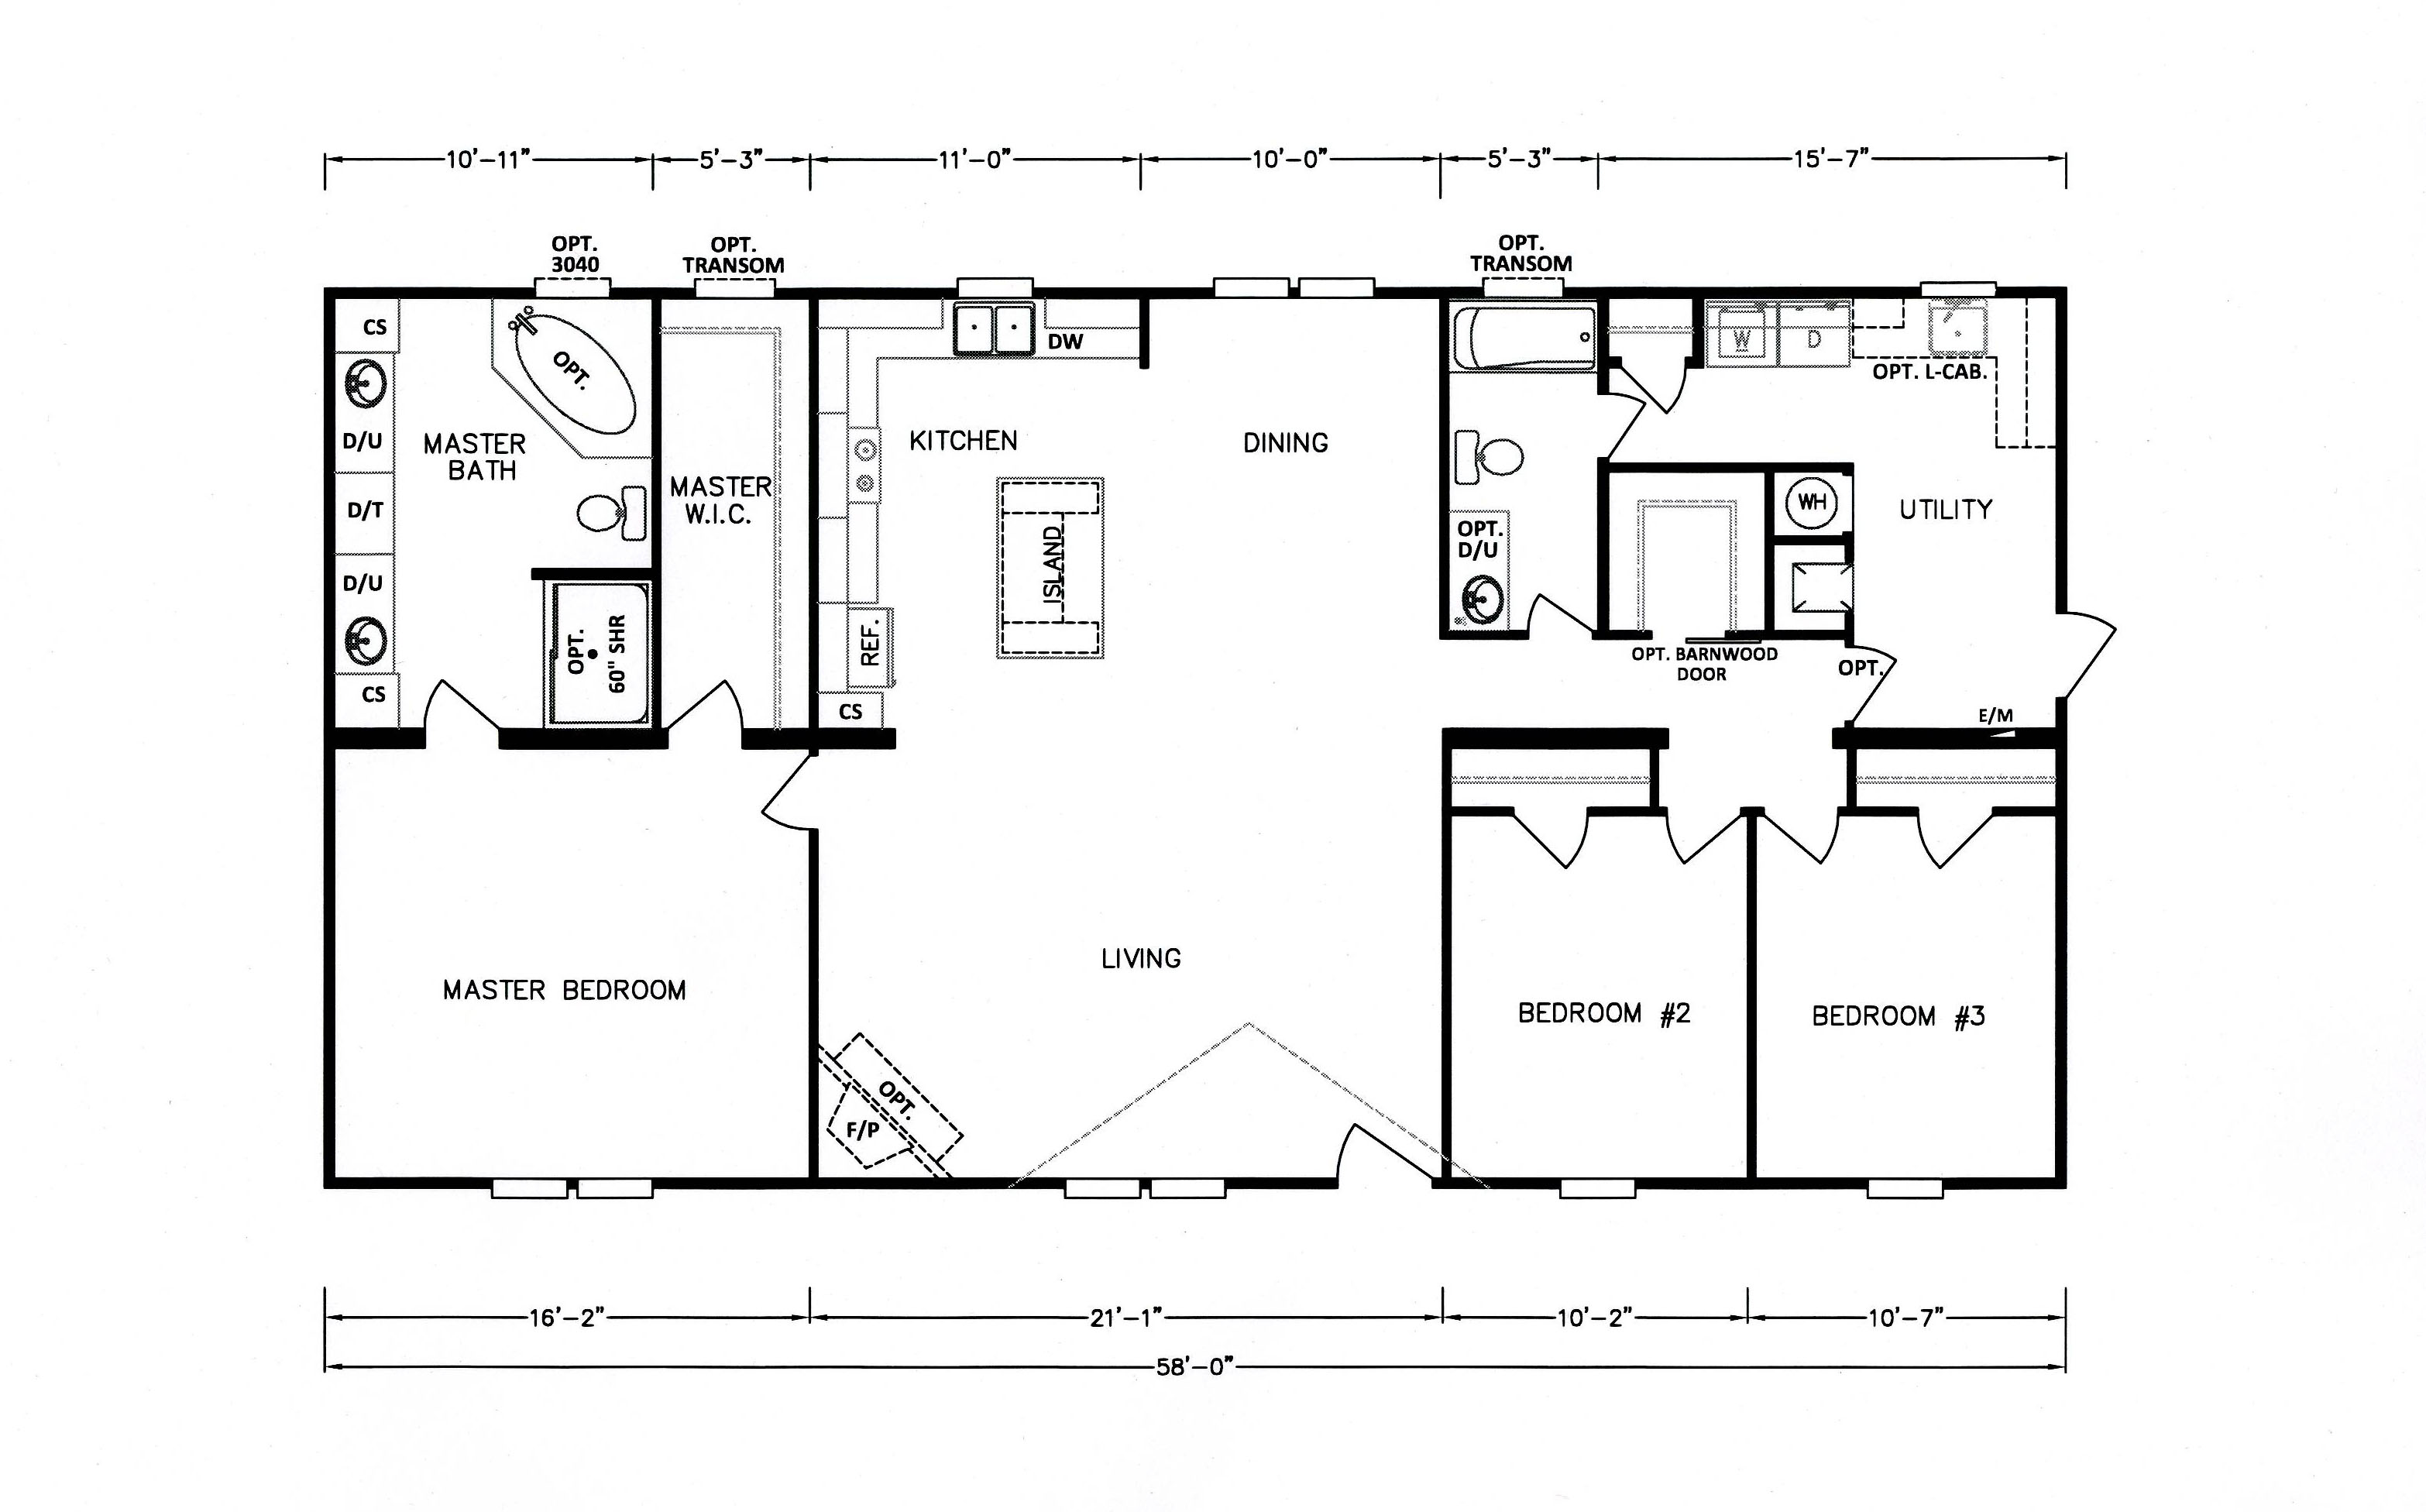 Kabco Builders | Manufactured Housing Industry on simple open floor house plans, 32 x 48 house plans, 32x44 house plans, 28x44 house plans, 24x32 house plans, 32x48 house plans, 28x40 house plans, 28x56 house plans, 28x36 house plans, 28 x 48 house plans, ranch house plans, 32 x 32 house plans,